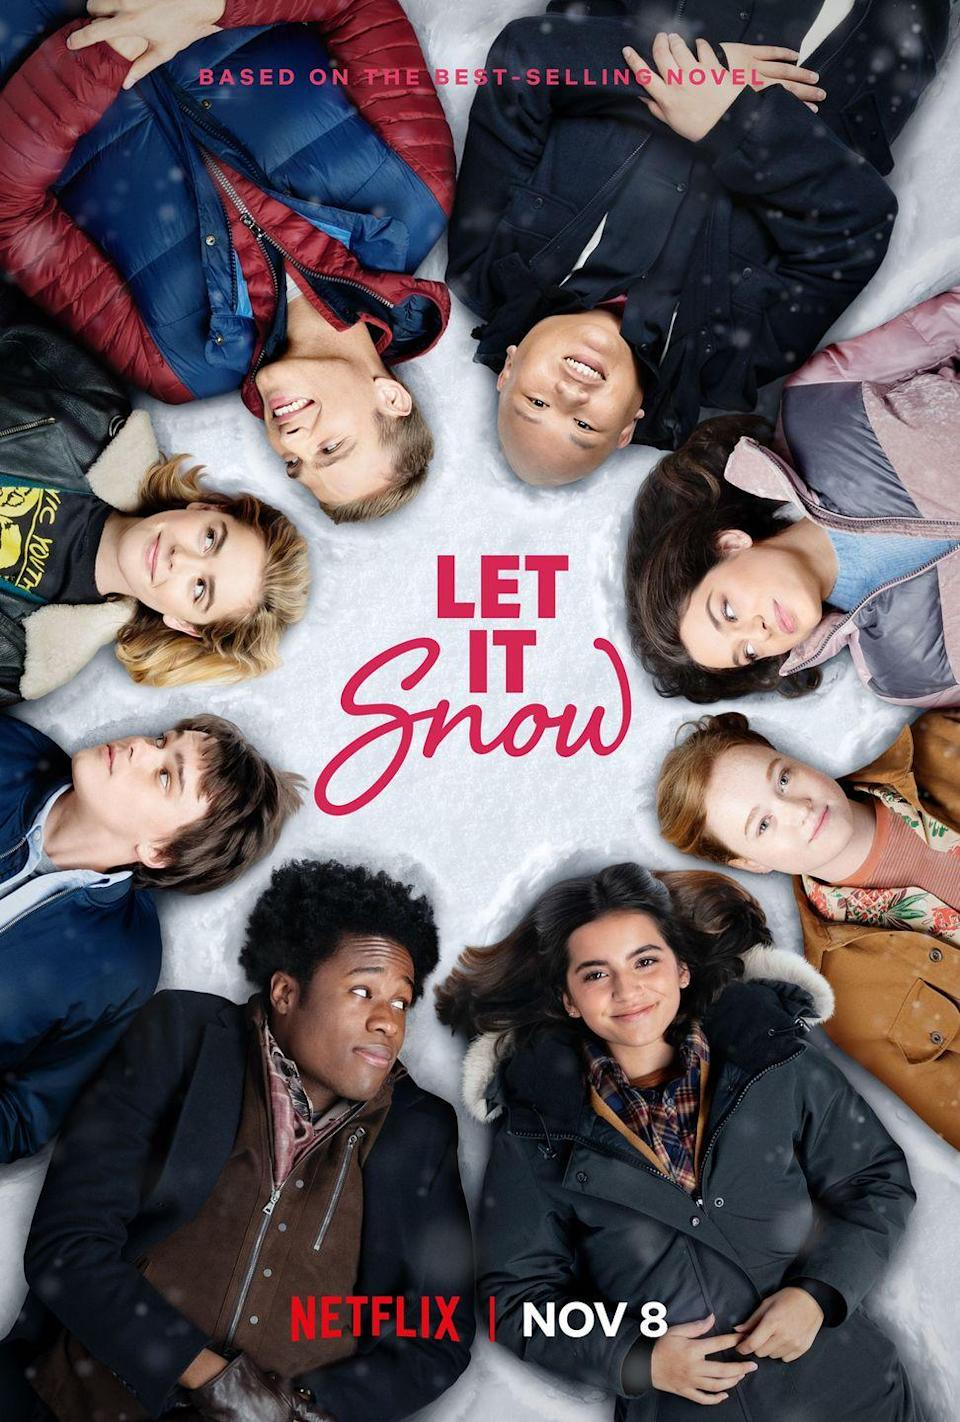 """<p>Based on the YA novel of the same name, this holiday rom-com tells the story of an epic snowstorm in a quiet Midwestern town and the even more epic party that unfolds at a local Waffle Town, changing the lives of the town's high school seniors forever.</p><p><a class=""""link rapid-noclick-resp"""" href=""""https://www.netflix.com/title/80201542"""" rel=""""nofollow noopener"""" target=""""_blank"""" data-ylk=""""slk:STREAM NOW"""">STREAM NOW</a></p>"""